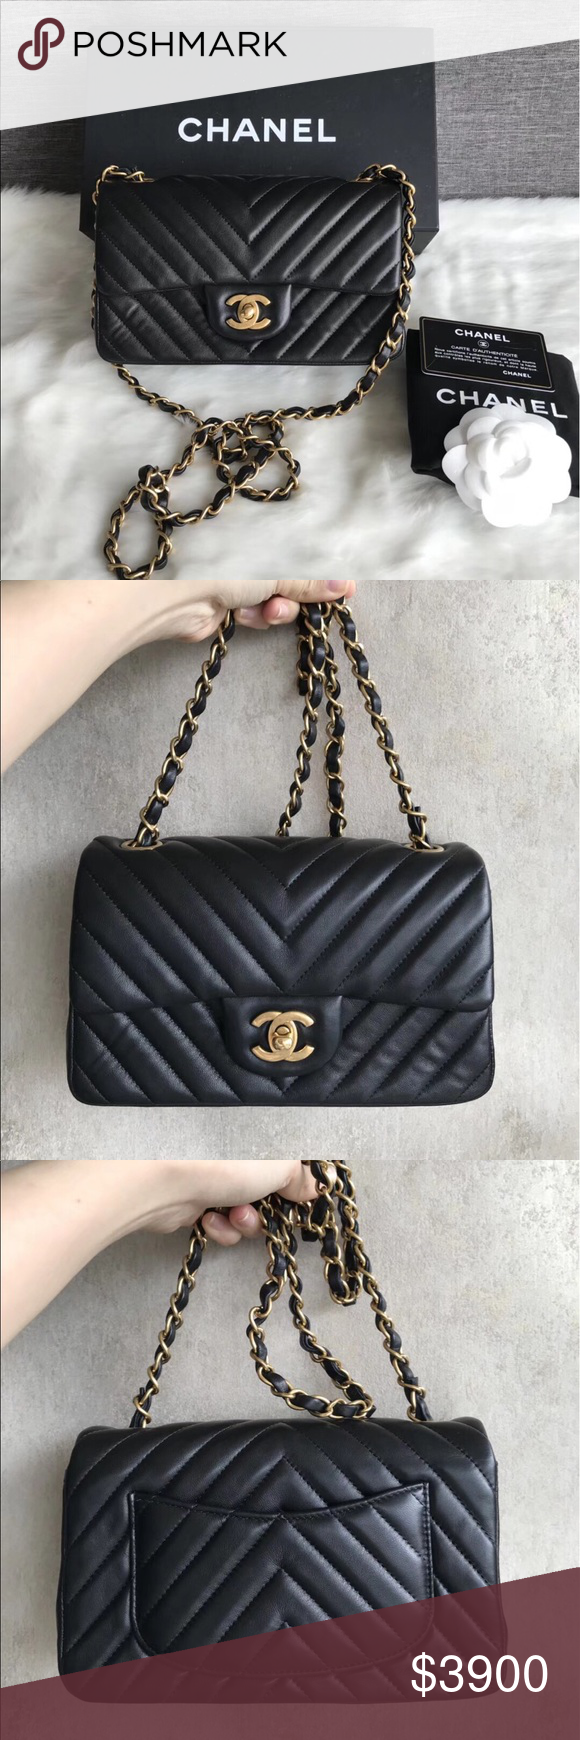 81dbea9d49ab No scuffs at 4 corners. Clean interior & exterior. Comes with card, dust bag  & box. CHANEL Bags Crossbody Bags. Authentic Chanel Chevron Mini 20cm ...